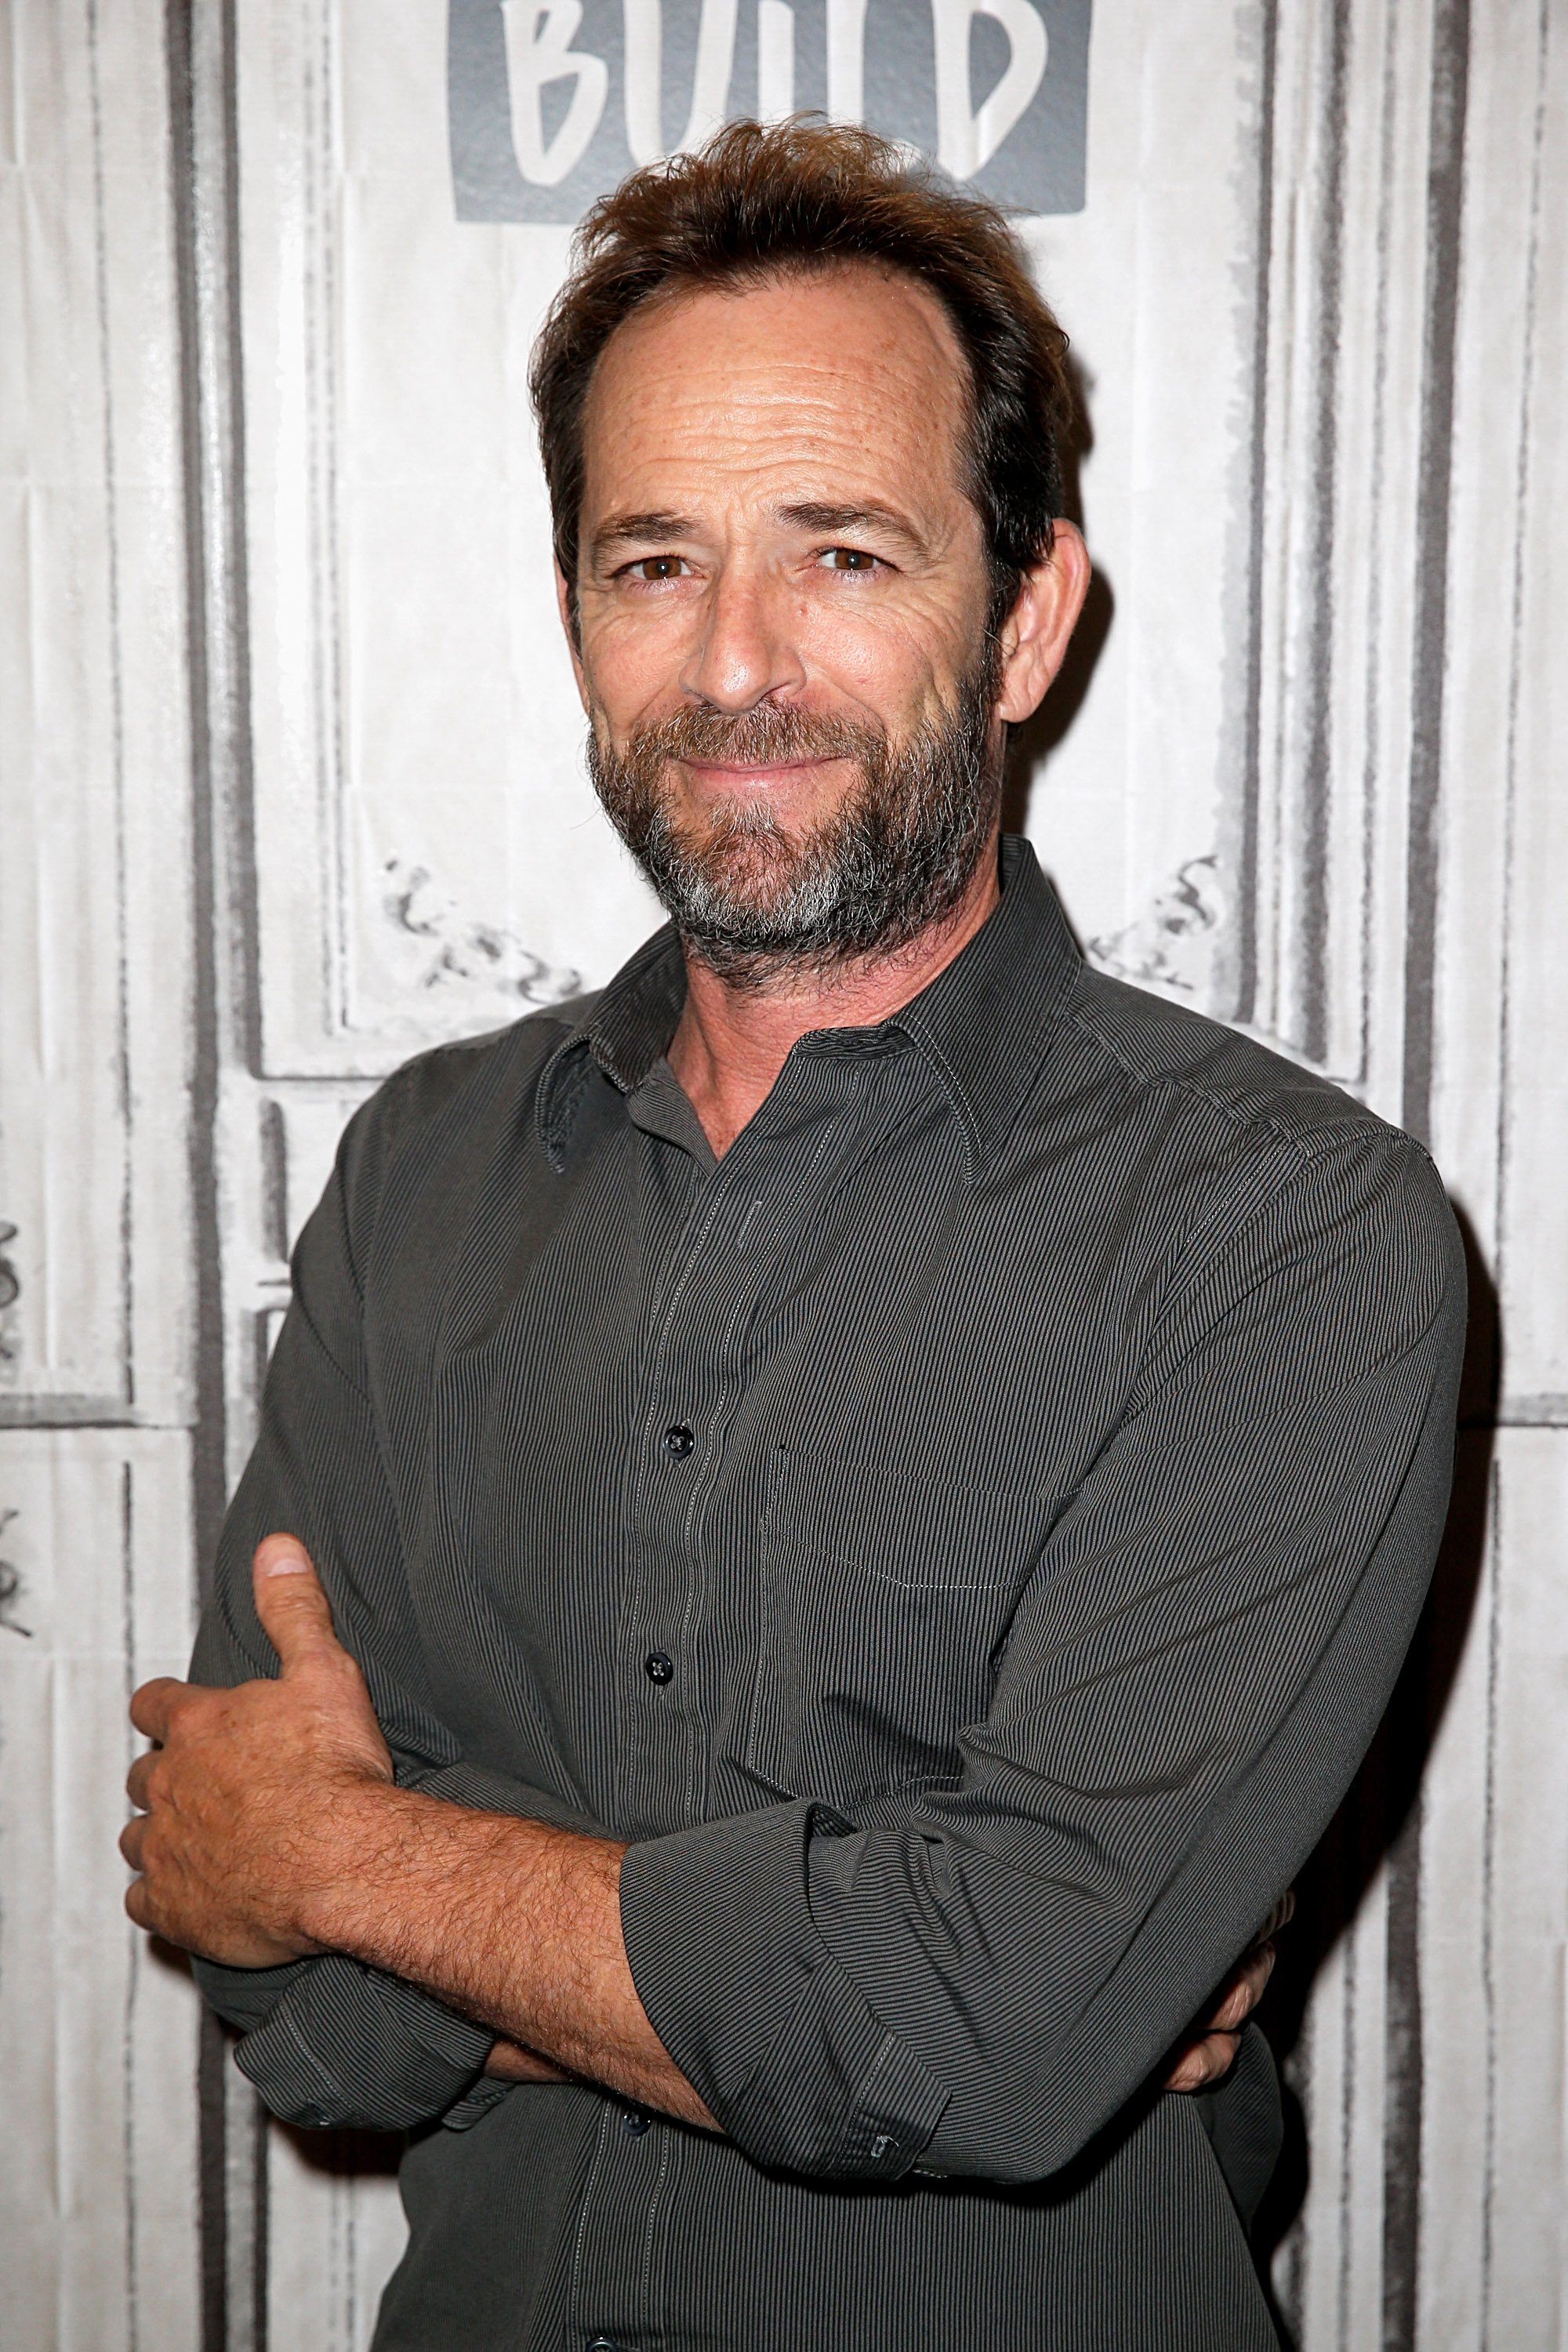 Luke Perry at the Build Studio in New York City | Photo: Getty Images